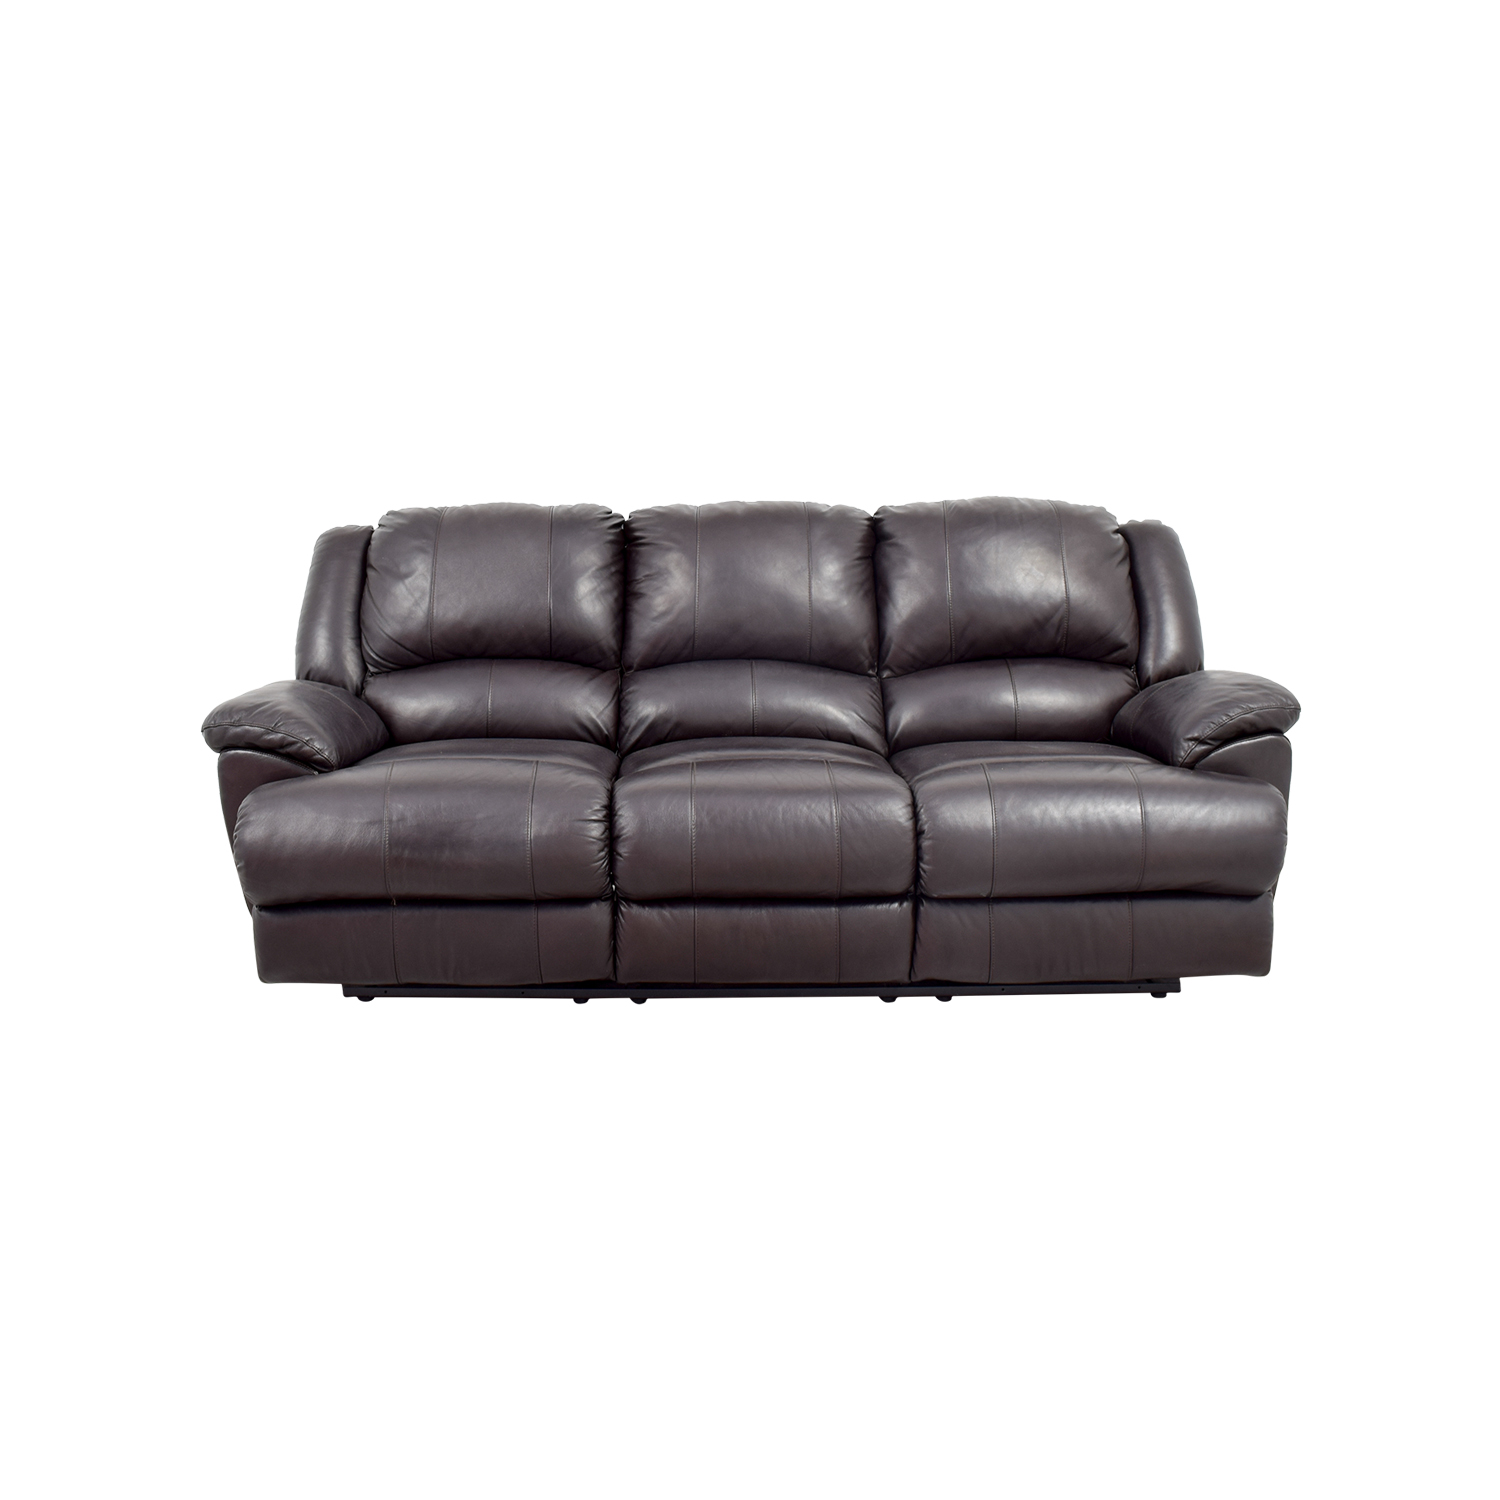 Jennifer Convertibles Jennifer Convertibles Brown Leather Sofa for sale